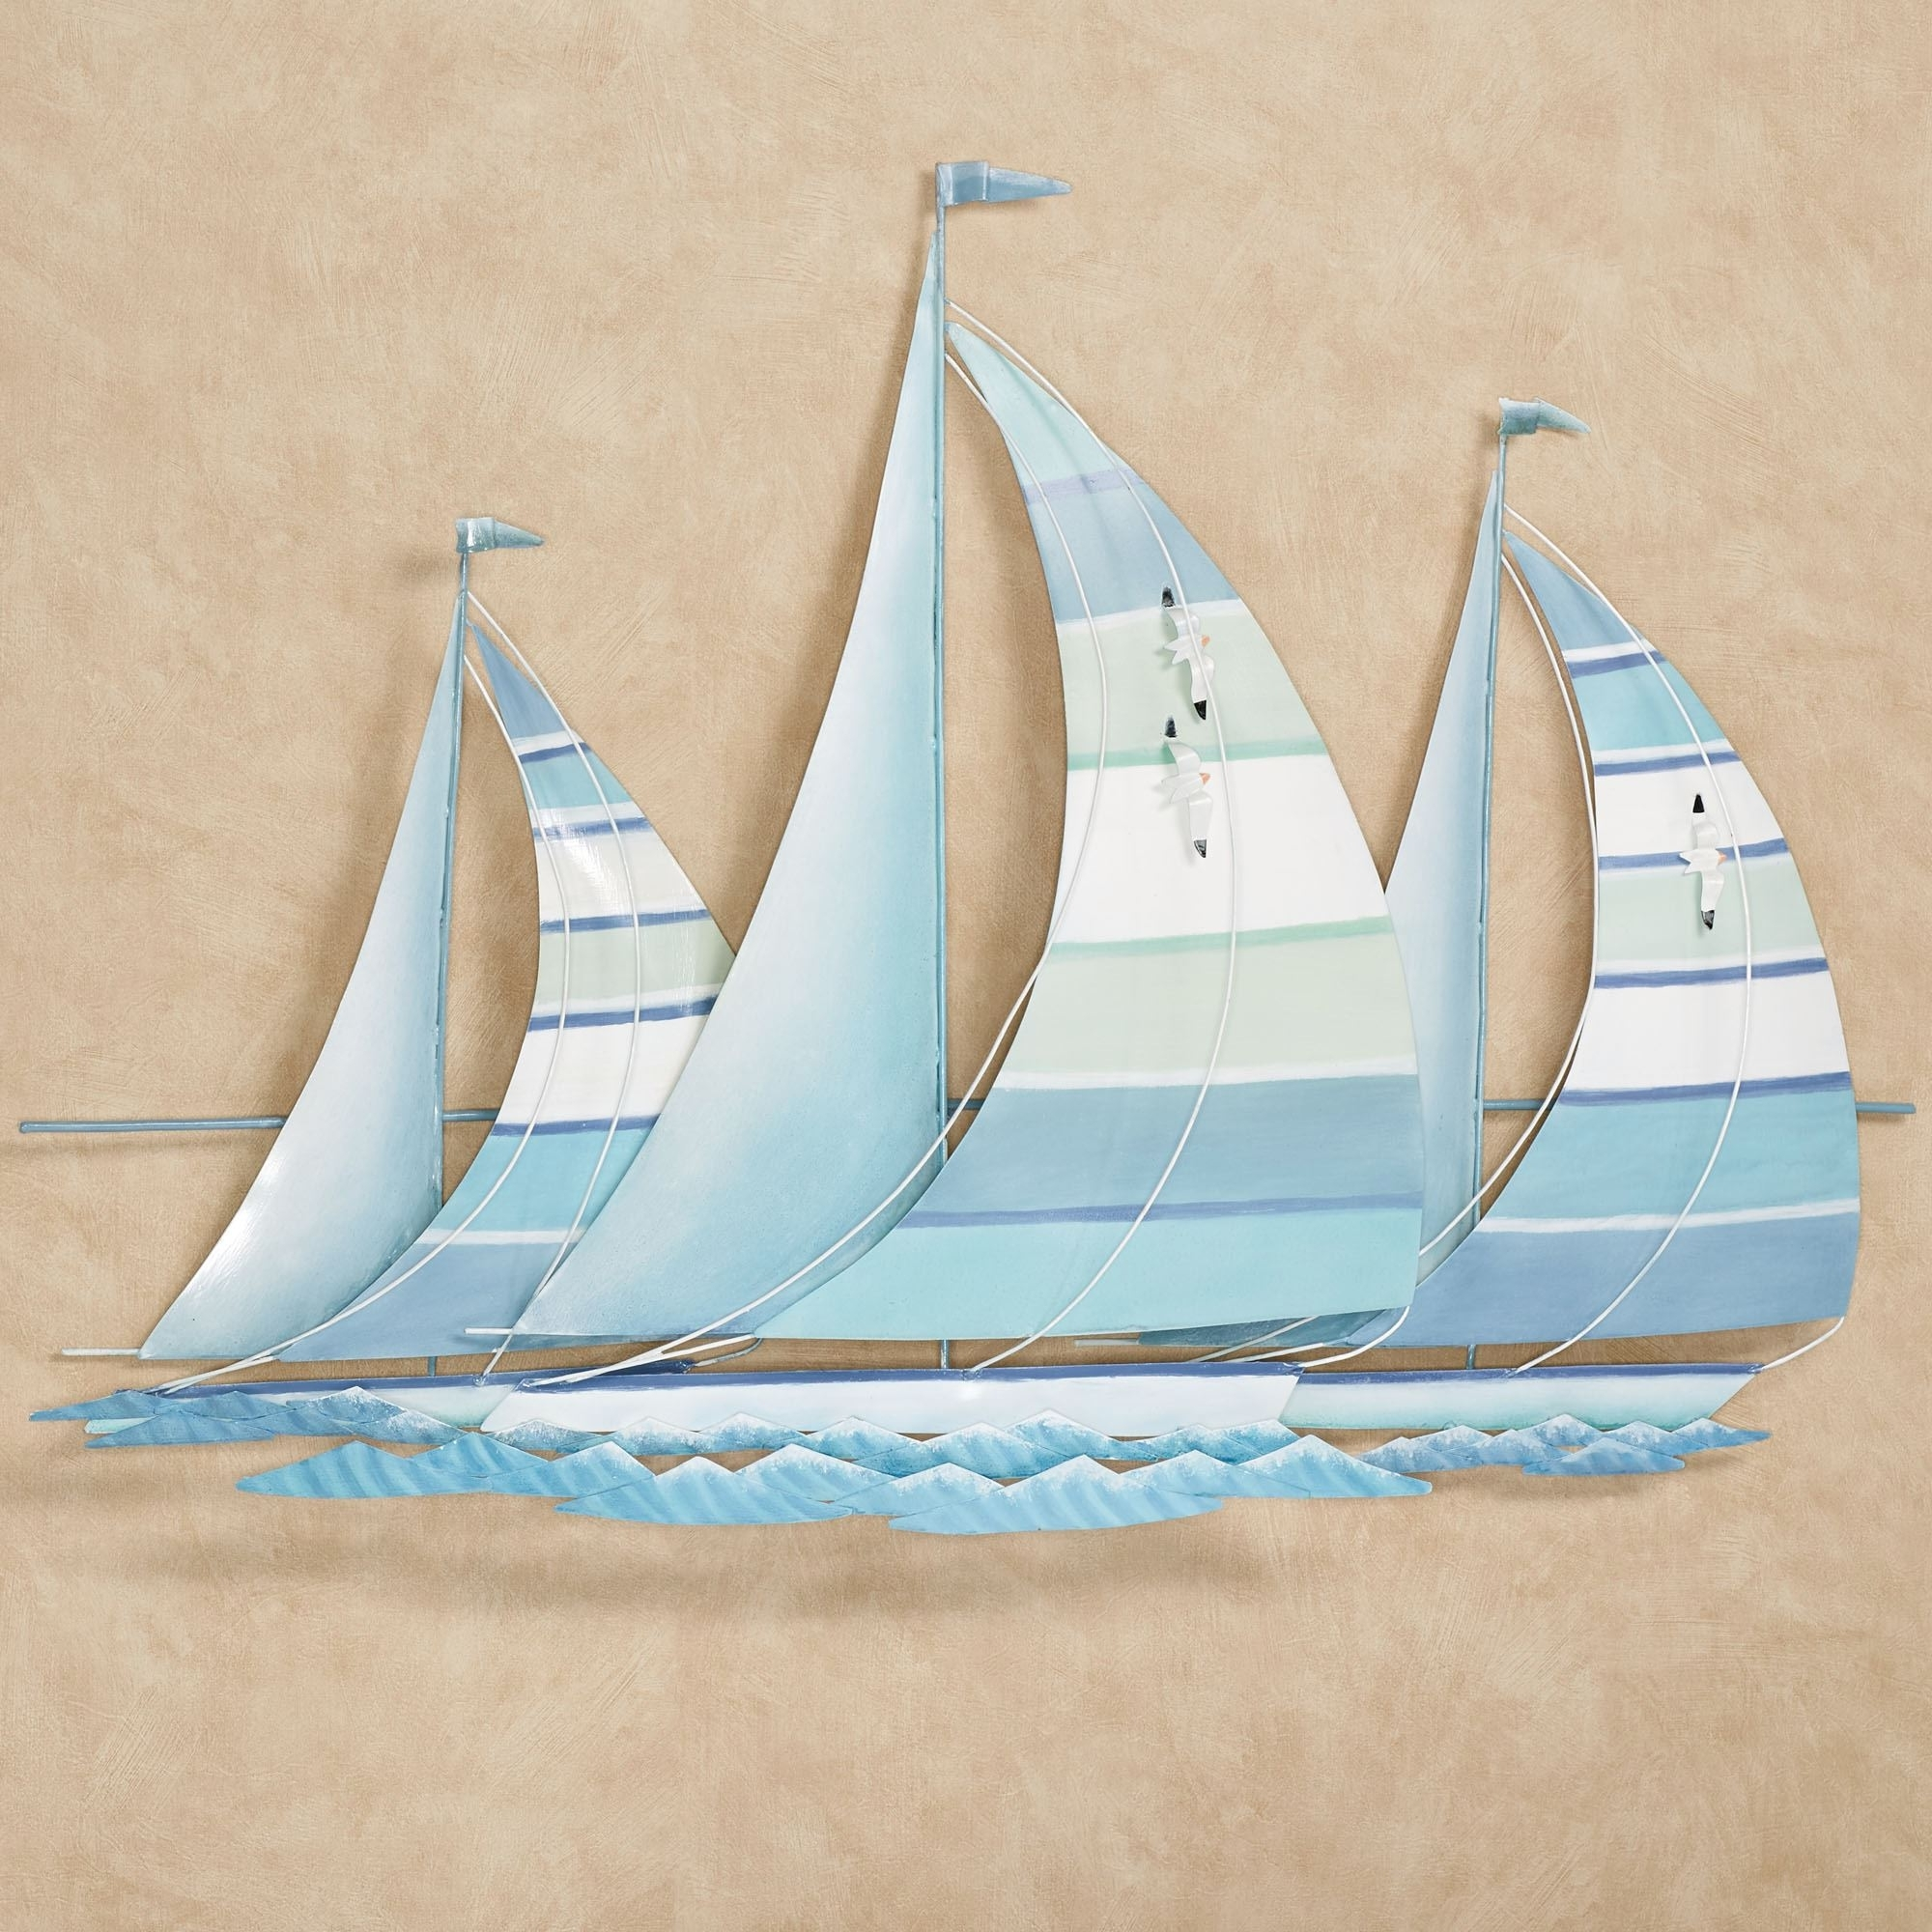 Touch Of Class Regarding Metal Sailboat Wall Art (View 11 of 15)